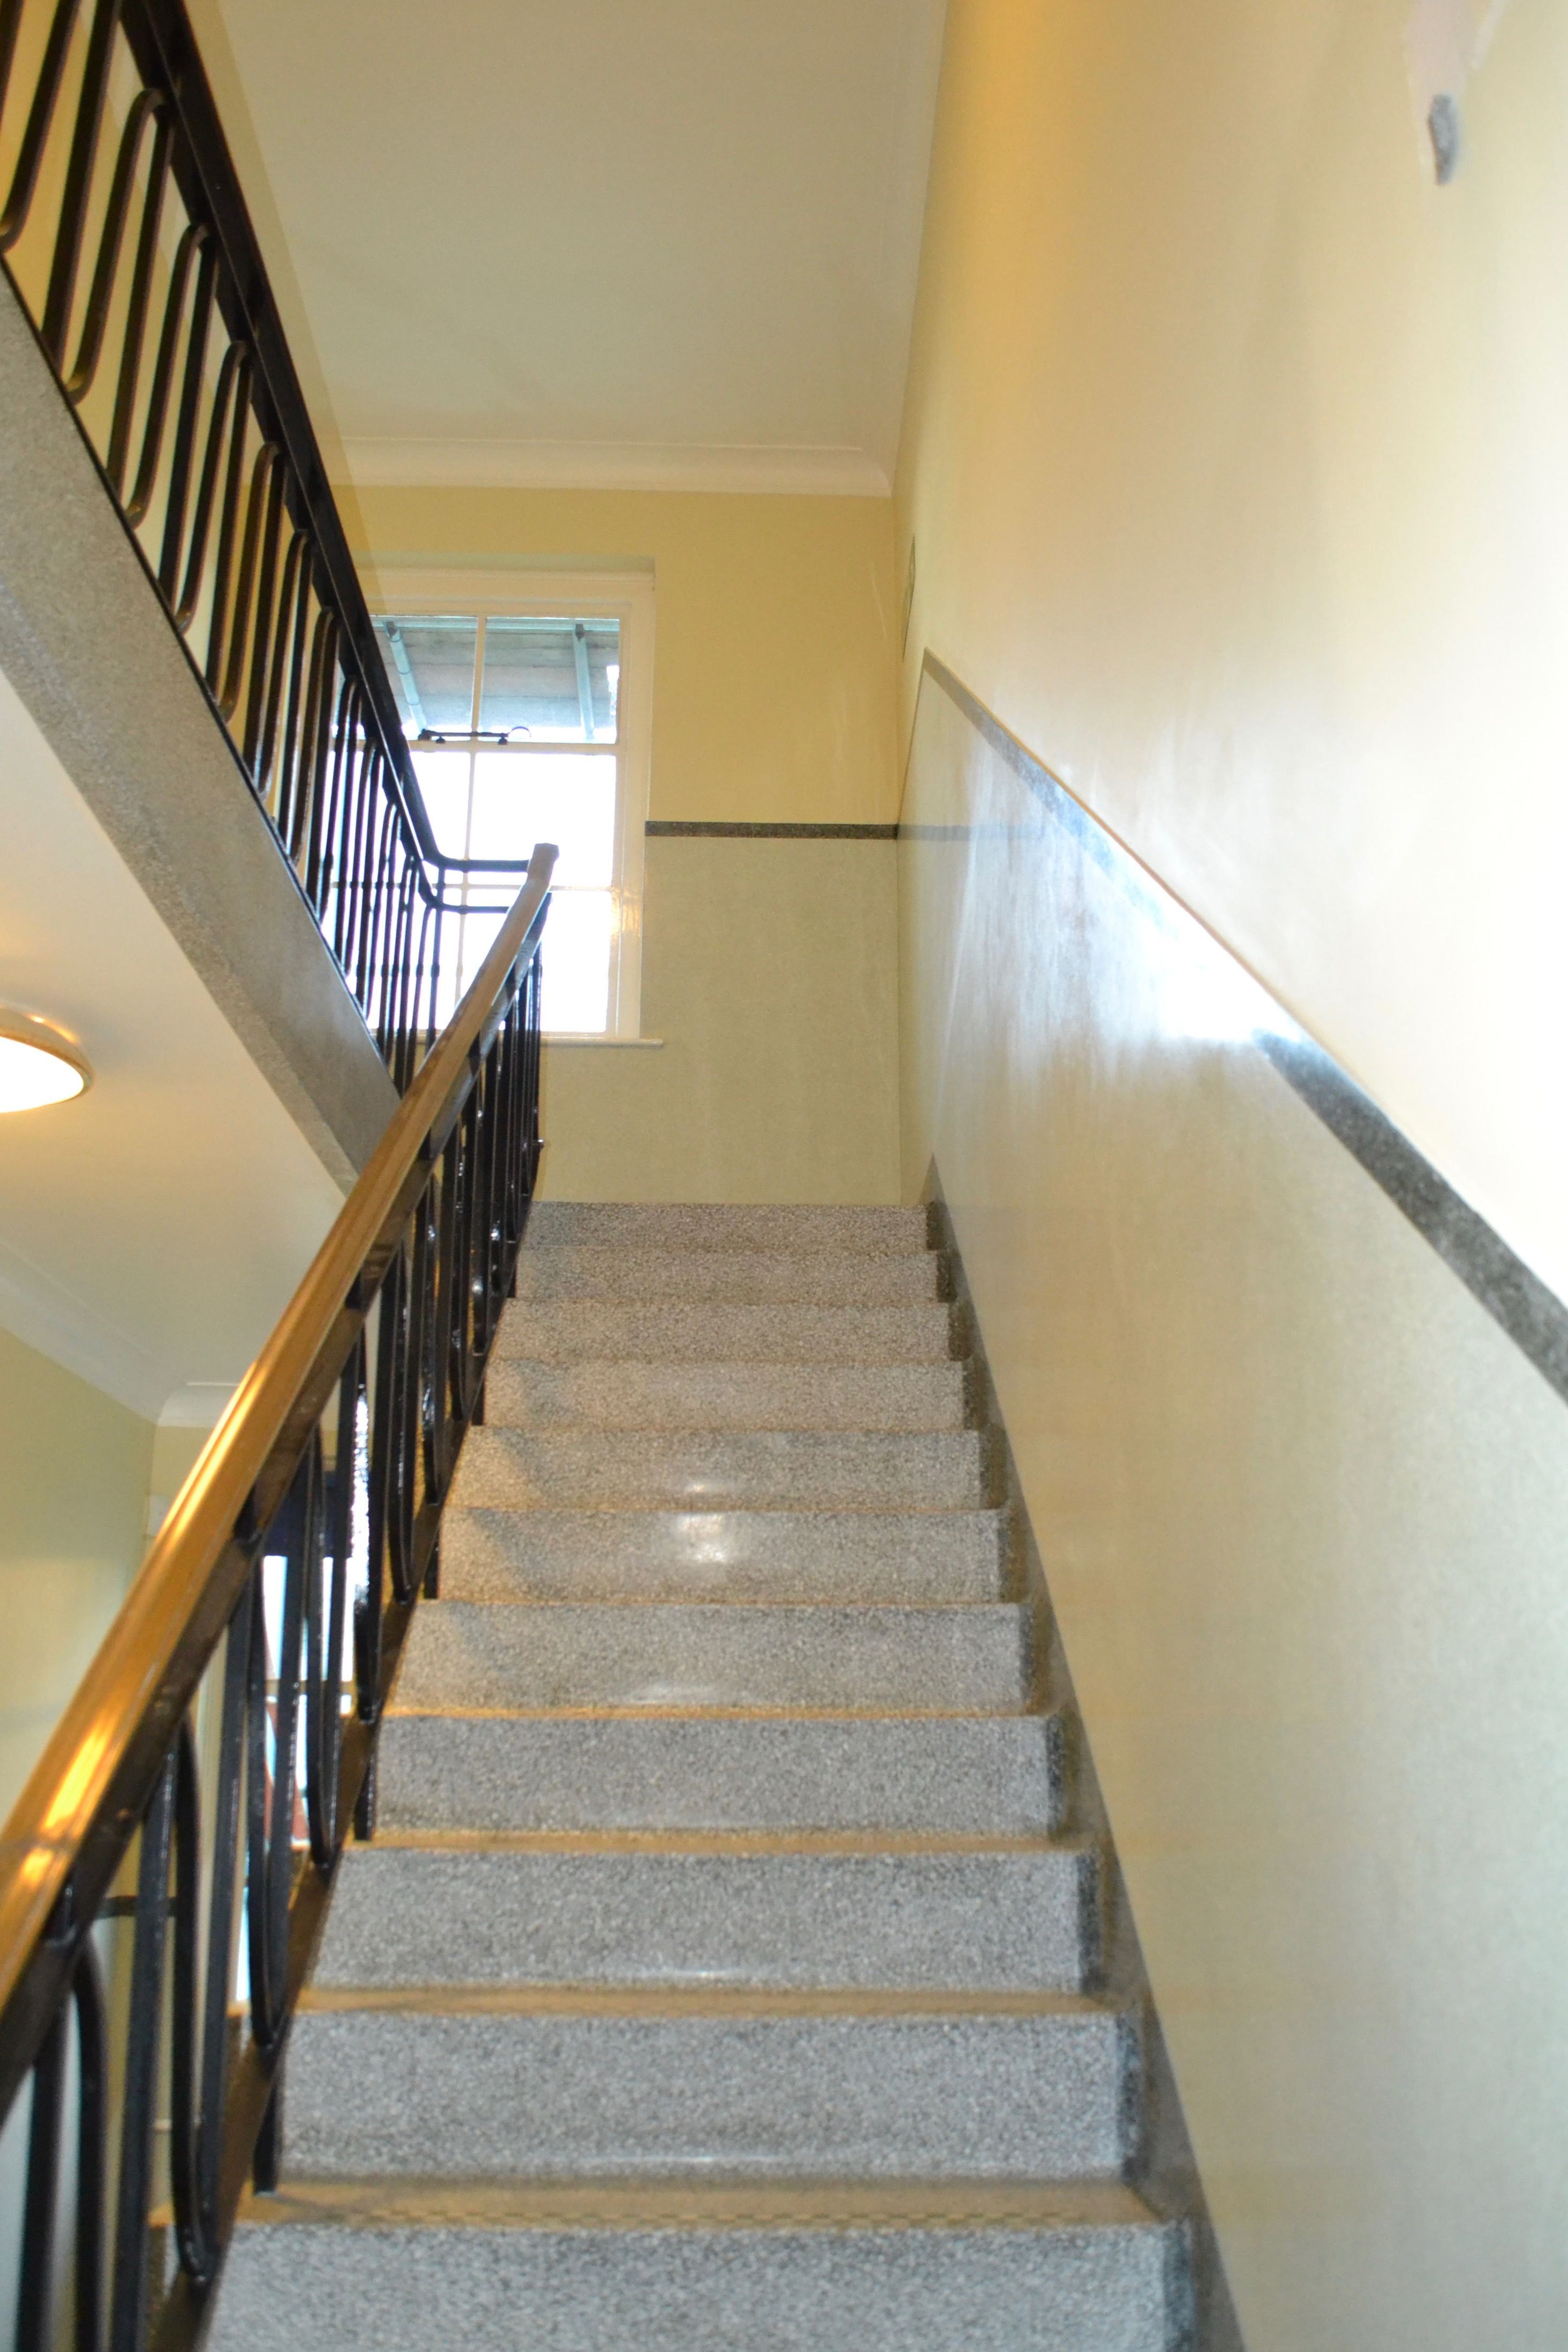 Terrazzo Stair Cleaning Restoration - Sussex Surrey Hampshire Kent v